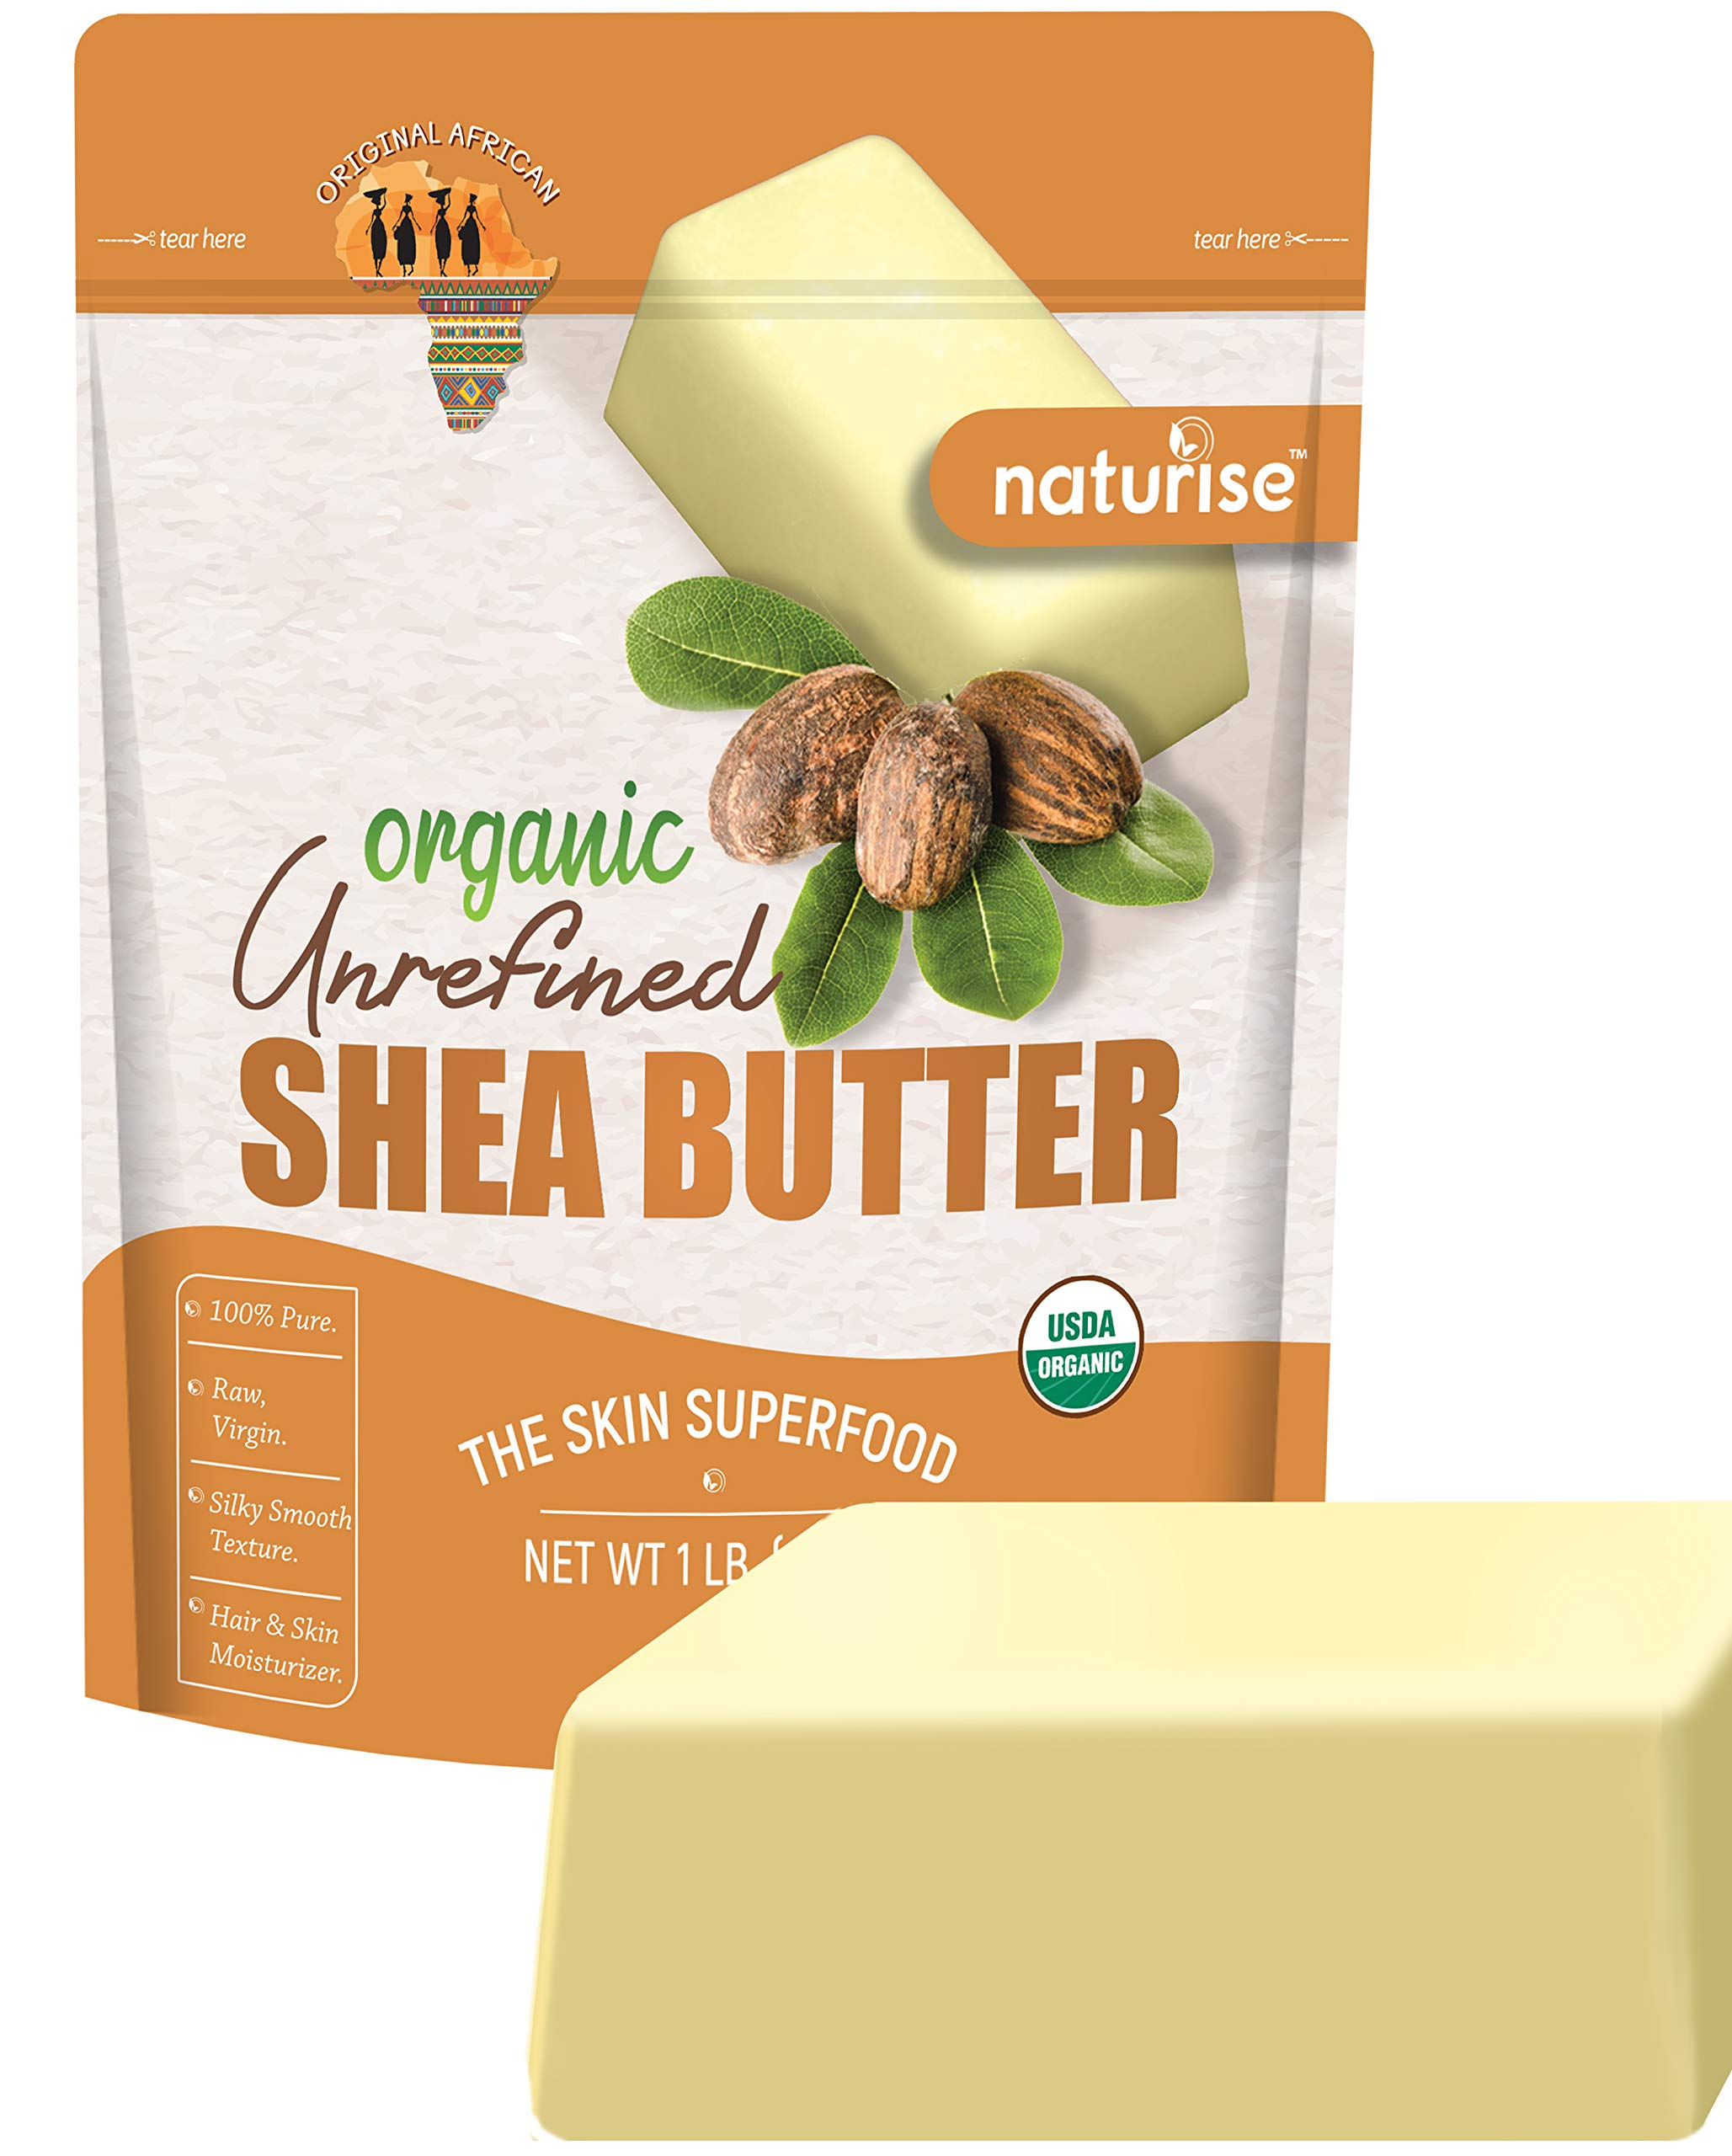 Naturise Shea Butter Raw Organic Unrefined Ivory 16 oz (1 LB) - Highest Grade African Shea Butter - Great for DIY Skincare Products and Body Butter Moisturizer for Dry Skin, Eczema, and Hair Care by Naturise